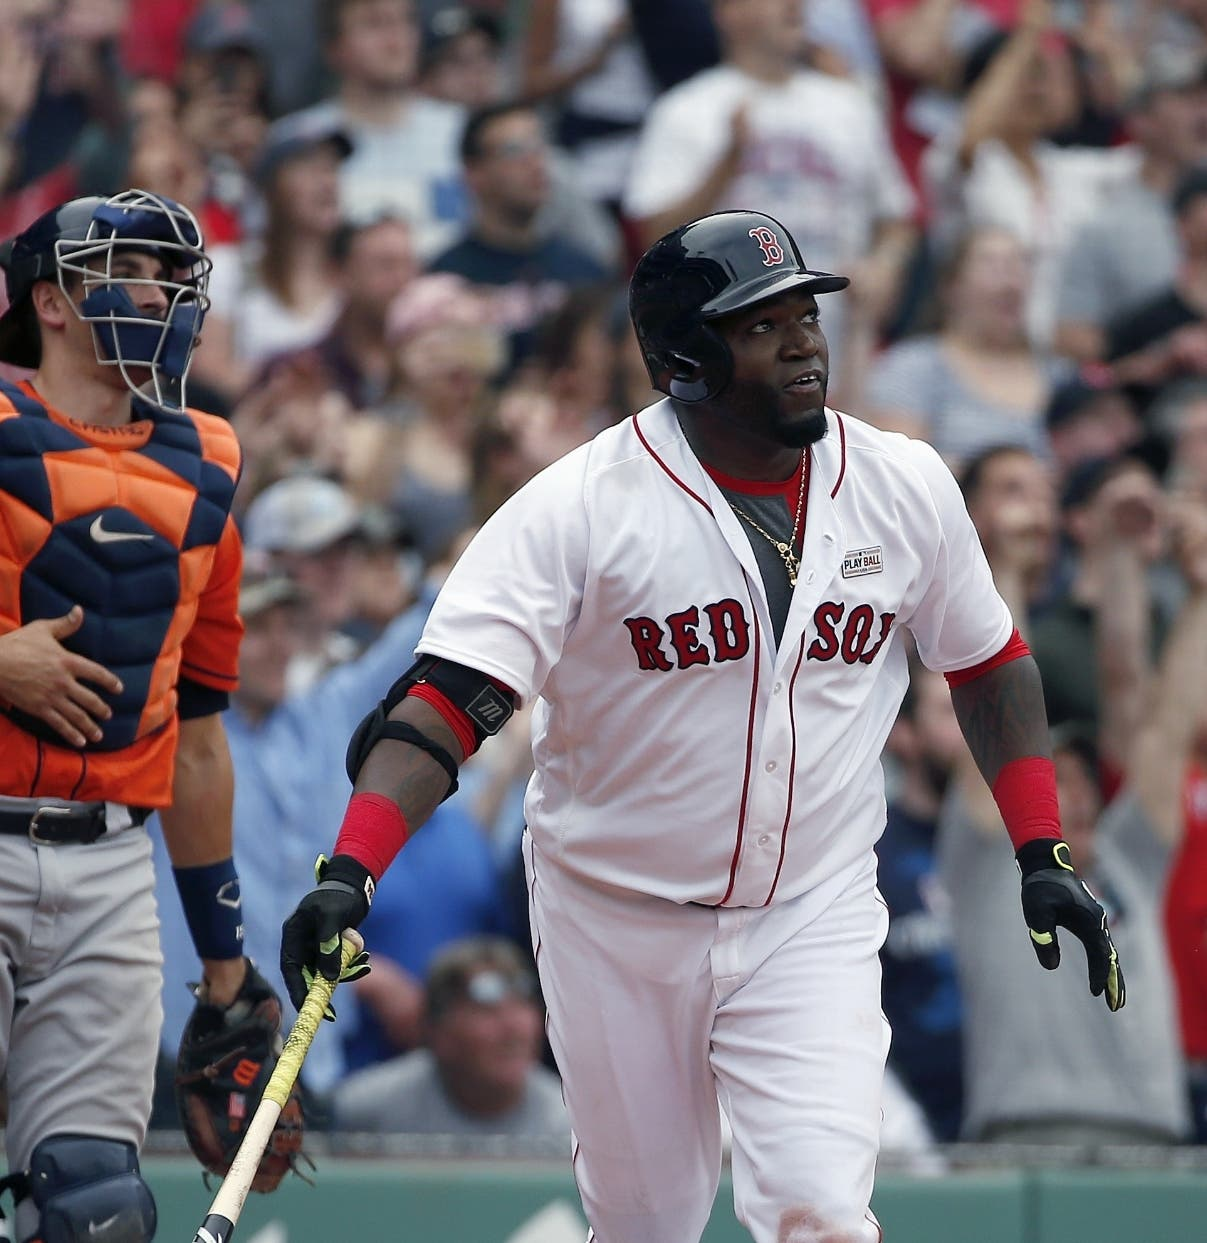 Boston Red Sox's David Ortiz, right, watches his game-winning double in front of Houston Astros' Jason Castro during the 11th inning of a baseball game in Boston, Saturday, May 14, 2016. The Red Sox won 6-5. (AP Photo/Michael Dwyer)